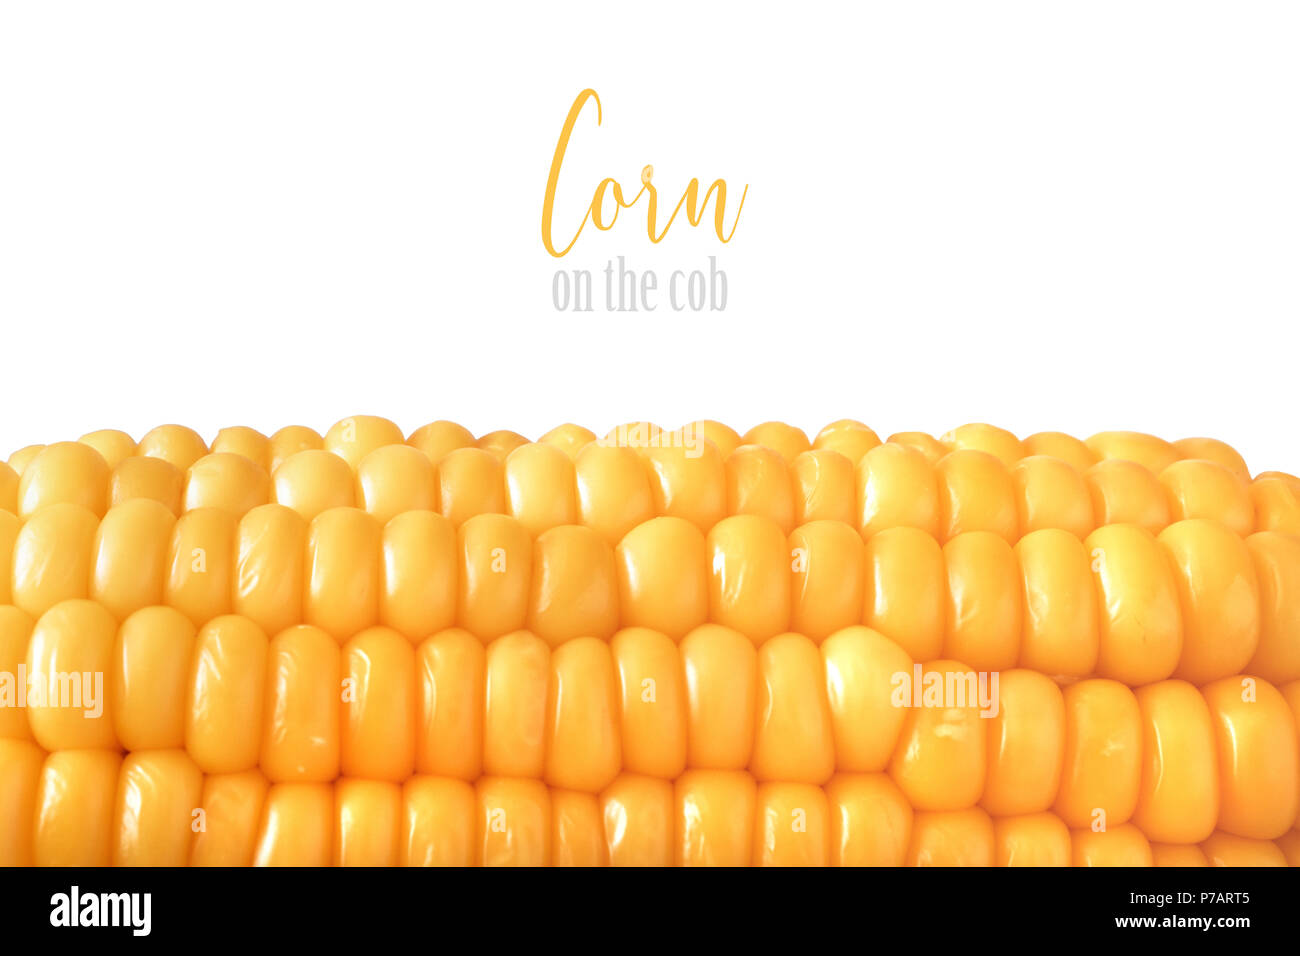 Close-up on oiled corn on the cob isolated on white background, text space - Stock Image